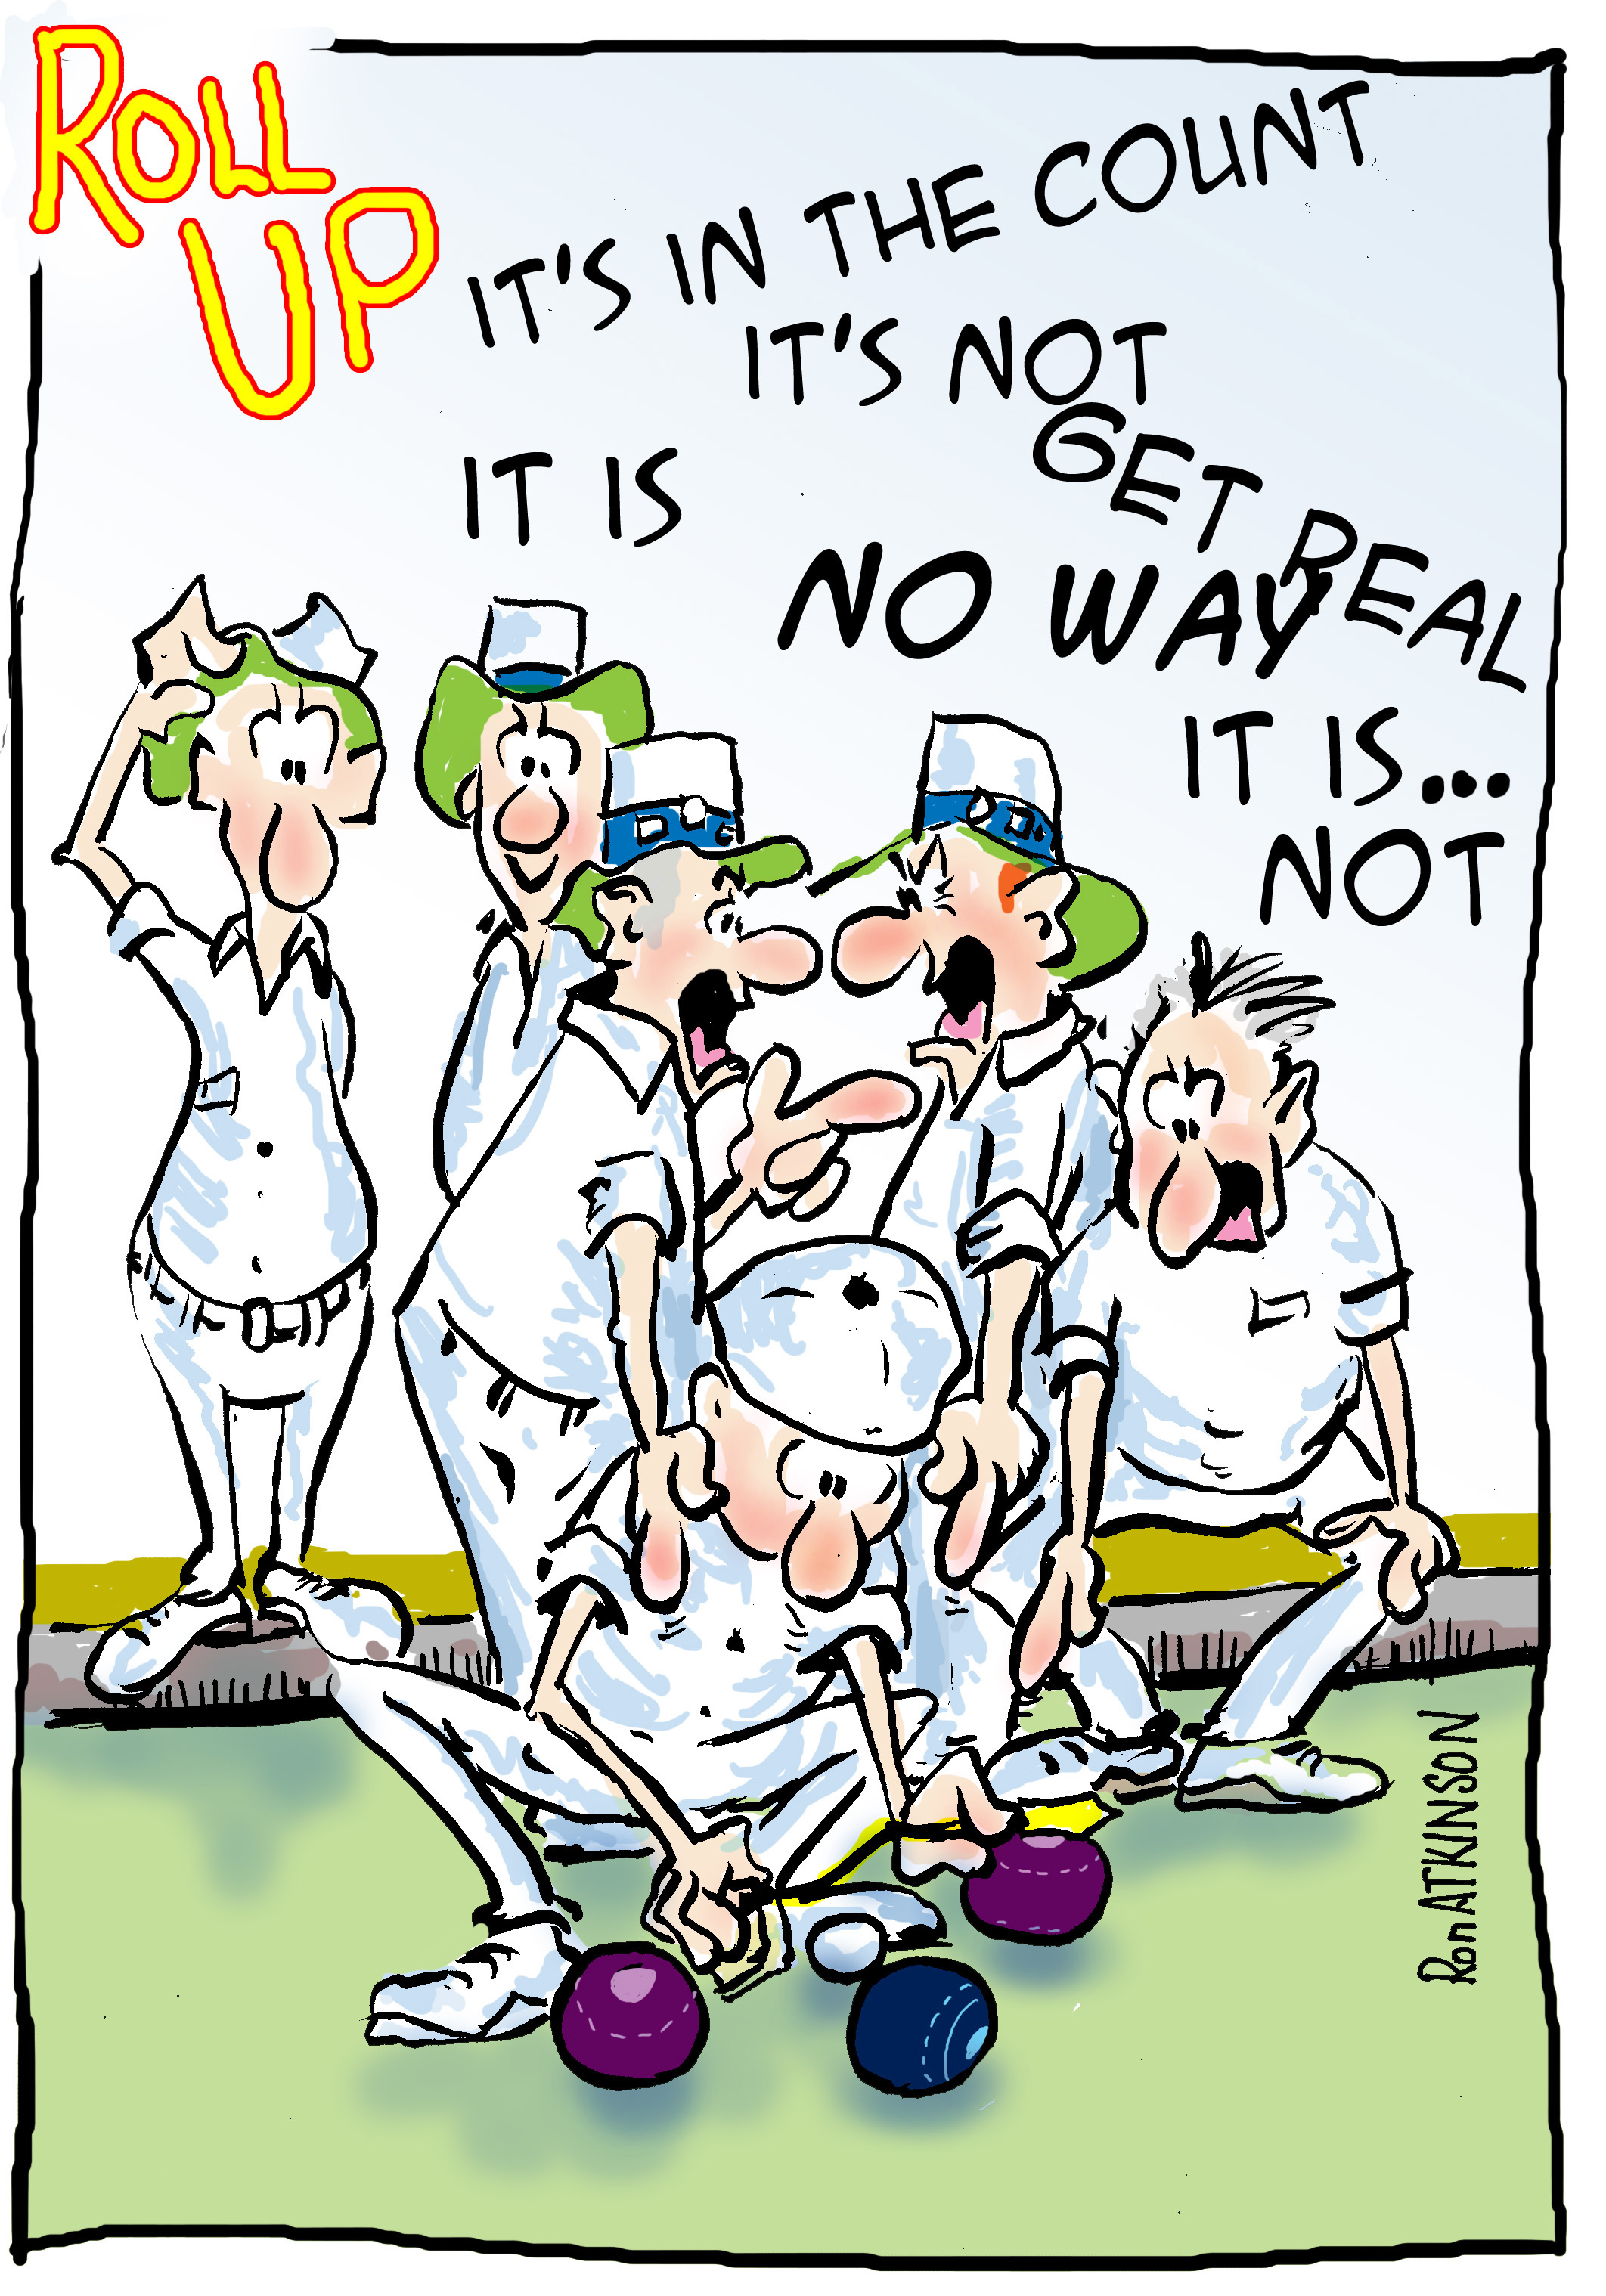 Lawn Bowls Ako S Cartoons Page 2 One person found this helpful. lawn bowls ako s cartoons page 2